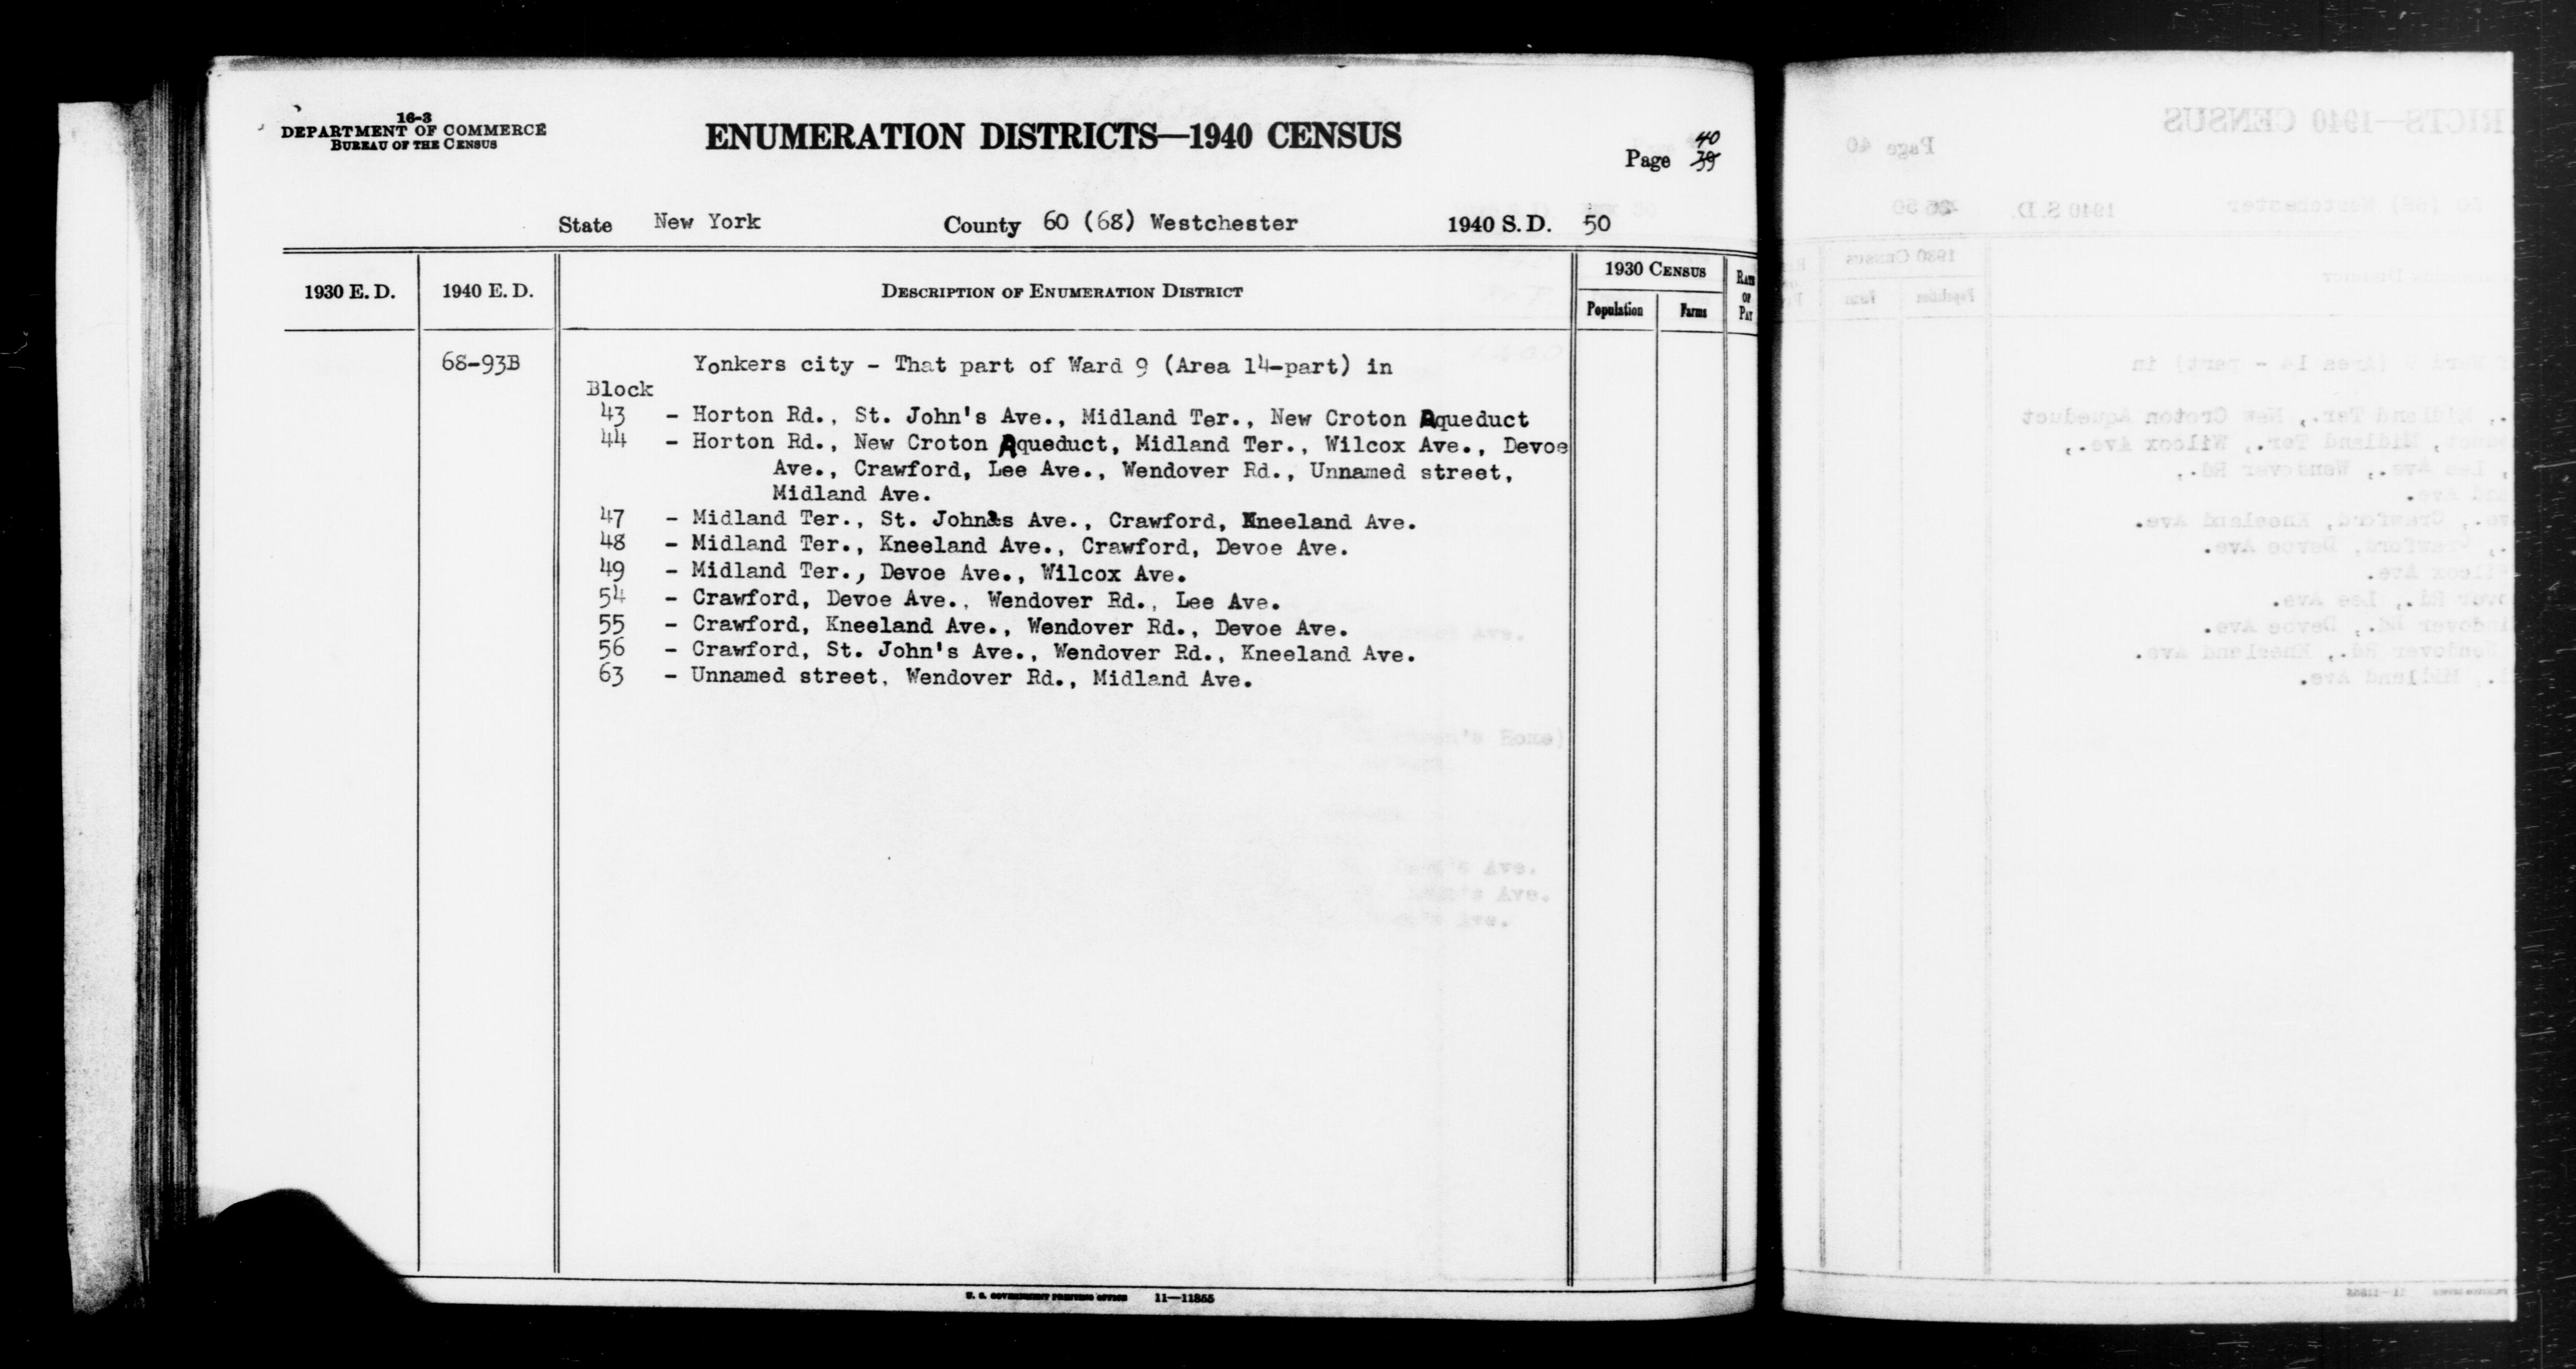 1940 Census Enumeration District Descriptions - New York - Westchester County - ED 68-93B